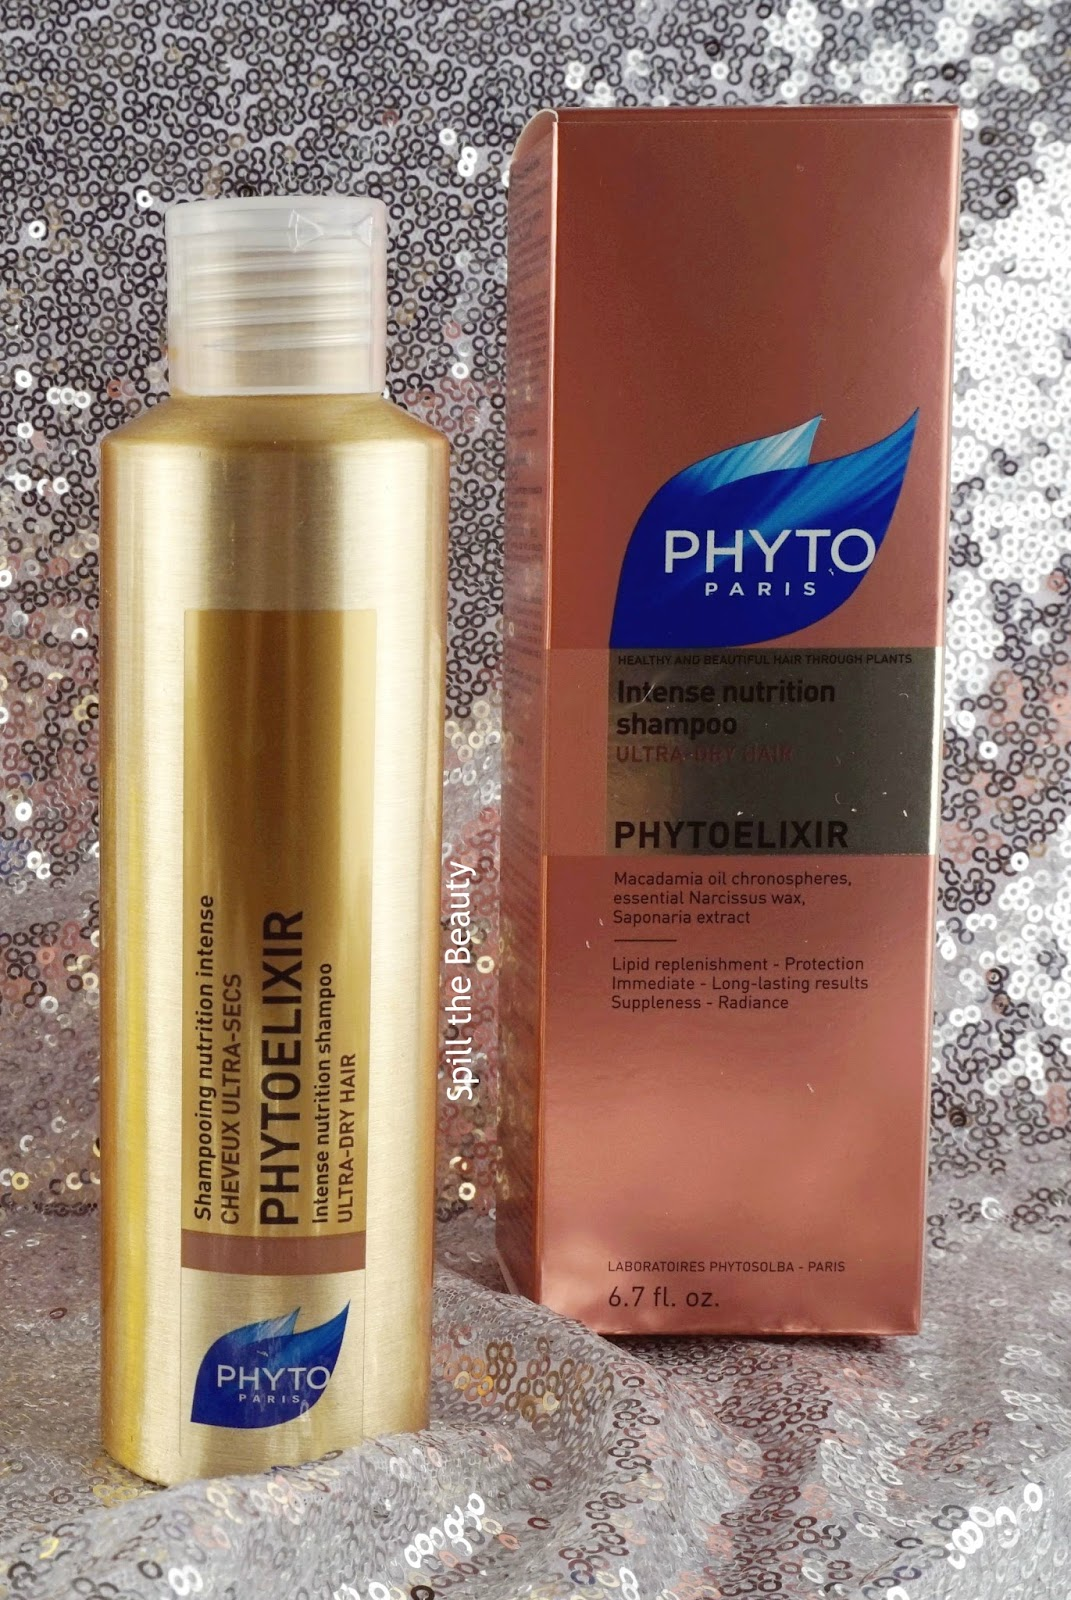 PHYTOELIXIR Intense Nutrition Subtle Oil Pre-Shampoo & Intense Nutrition Shampoo - Review